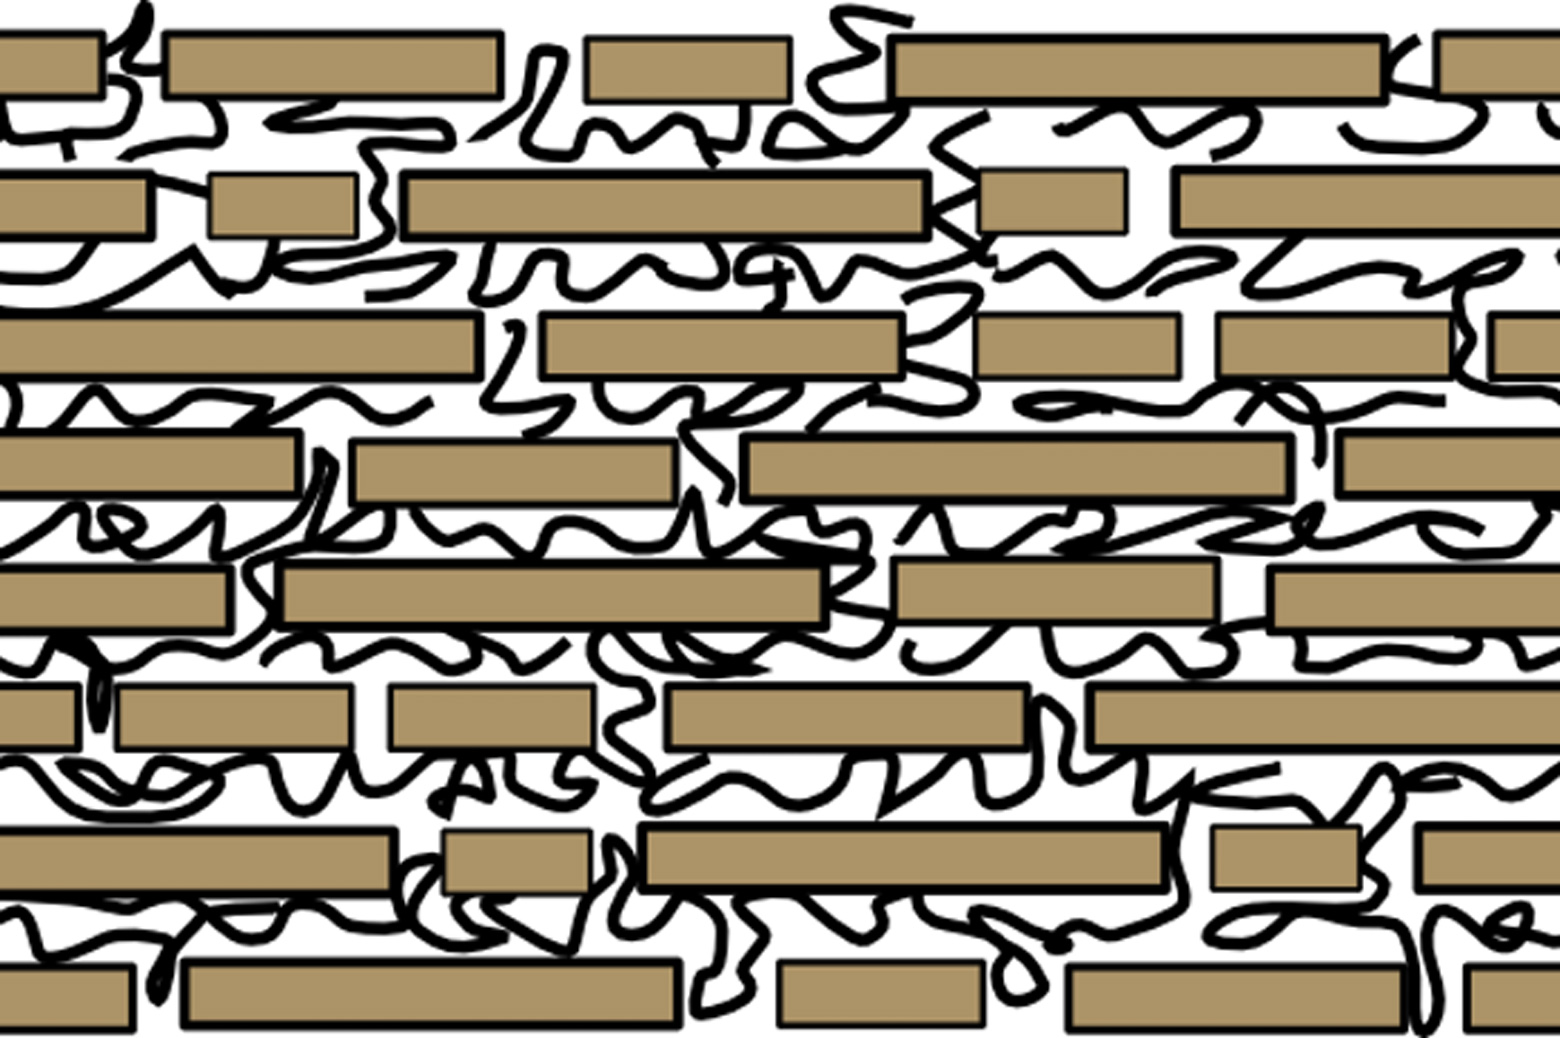 Schematic of the microscopic structure of nacre